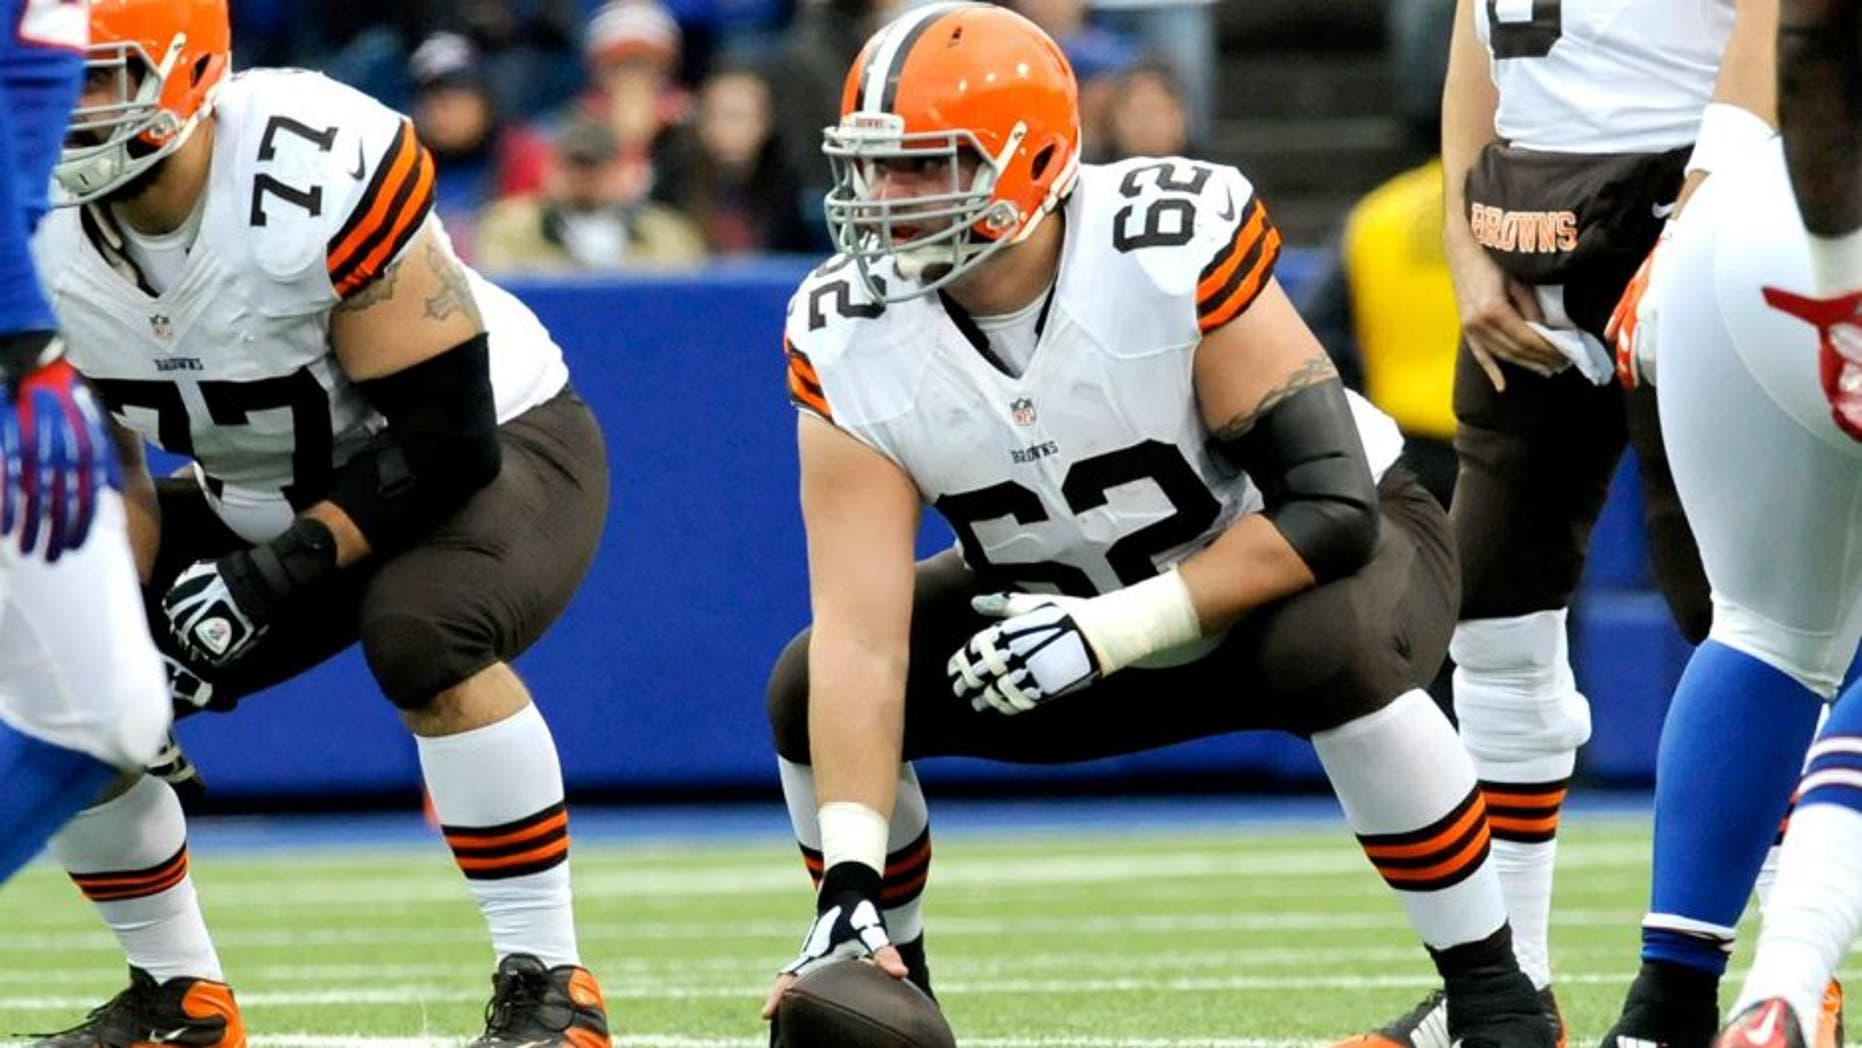 ORCHARD PARK, NY - NOVEMBER 30, 2014: Center Ryan Seymour #62 of the Cleveland Browns lines up at the line of scrimmage during a game against the Buffalo Bills on November 30, 2014 at Ralph Wilson Stadium in Orchard Park, New York. Buffalo won 26-10. (Photo by: Nick Cammett/Diamond Images/Getty Images)